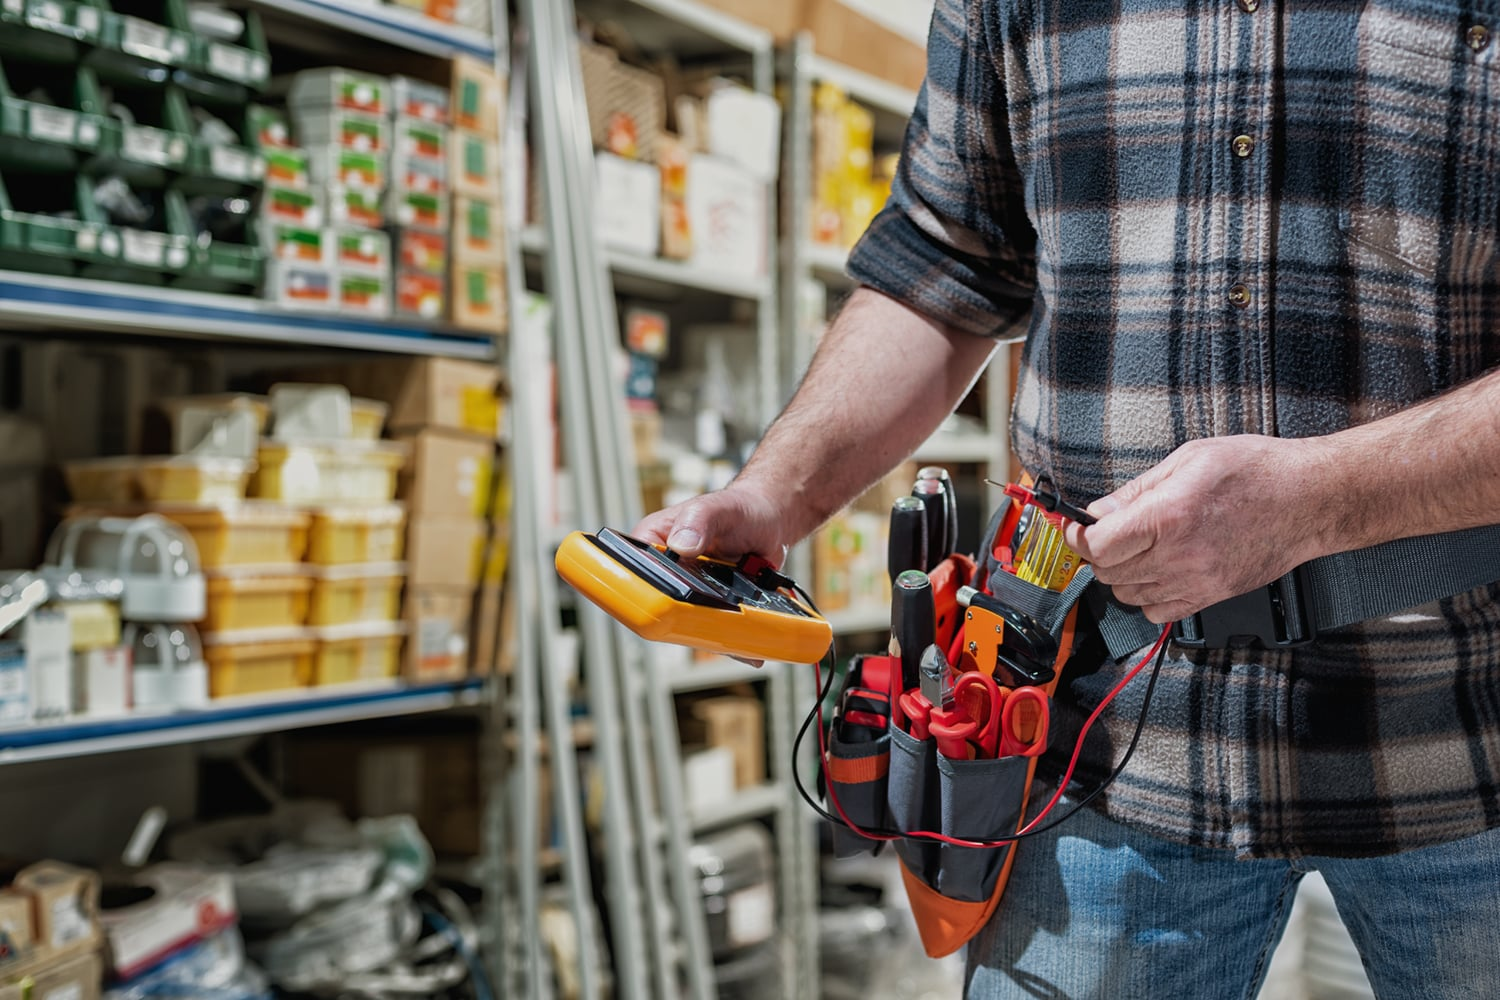 This is the cover photo for our Best Electrician Tool Belt article. It shows an electrician in a store isle, holding a multimeter, wearing a tool belt with tools inside. The background has several shelves of supplies.